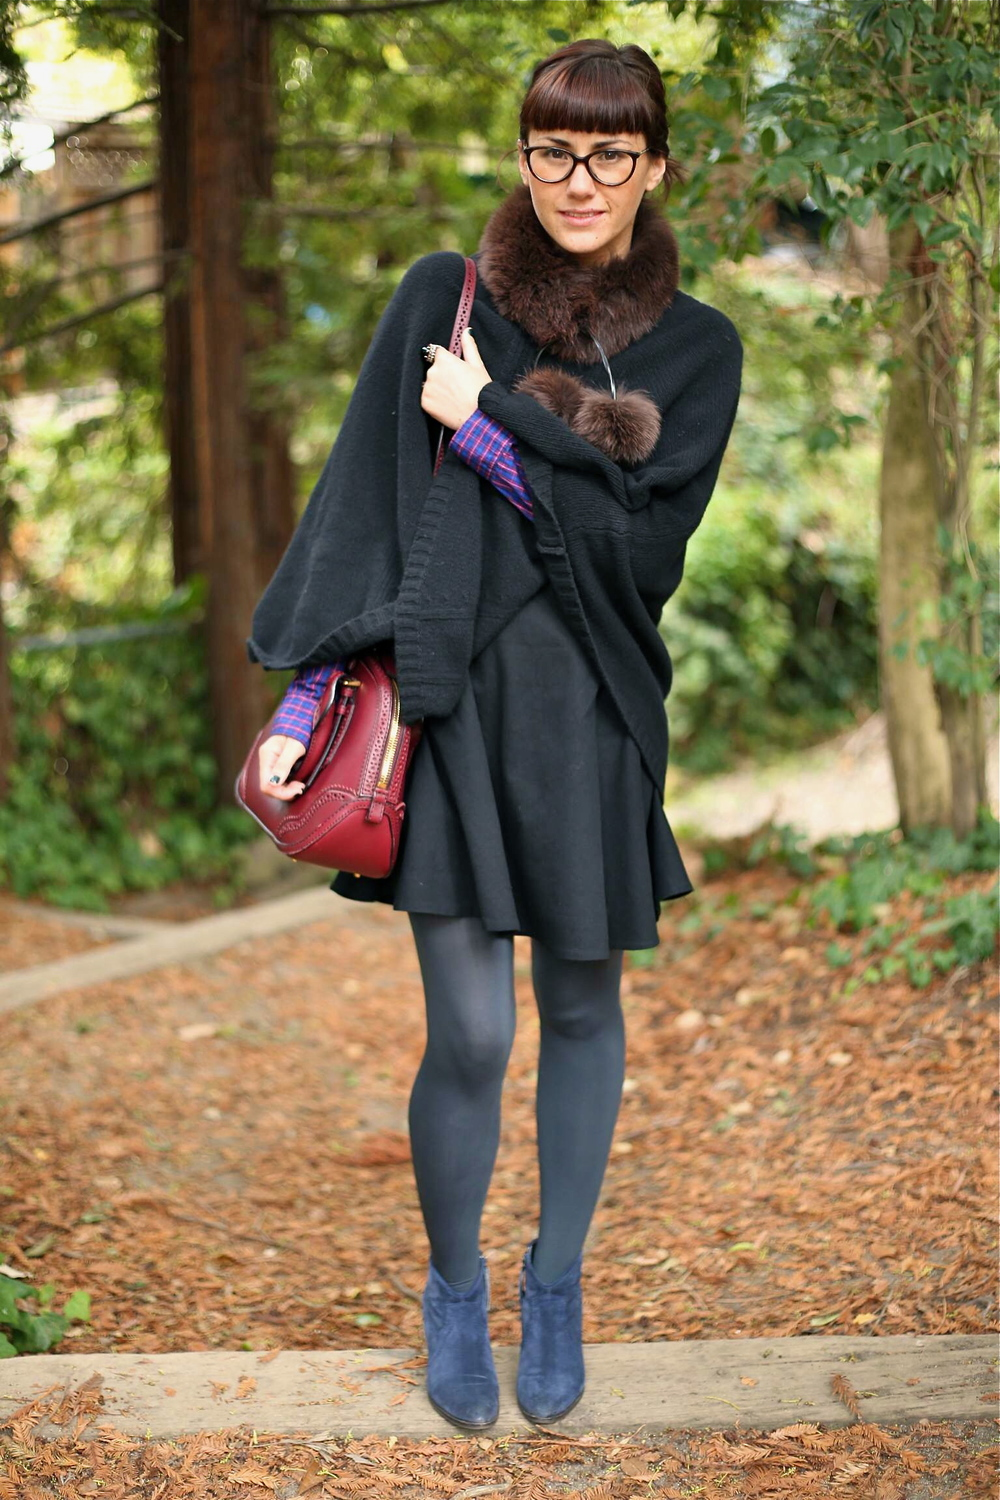 Poncho: Jigsaw London; Check Blouse: Gap; Dress: Joie, via Marshalls; Boots:  Jigsaw London ; Bag: Burberry; Furry Collar: Vintage, via estate sale